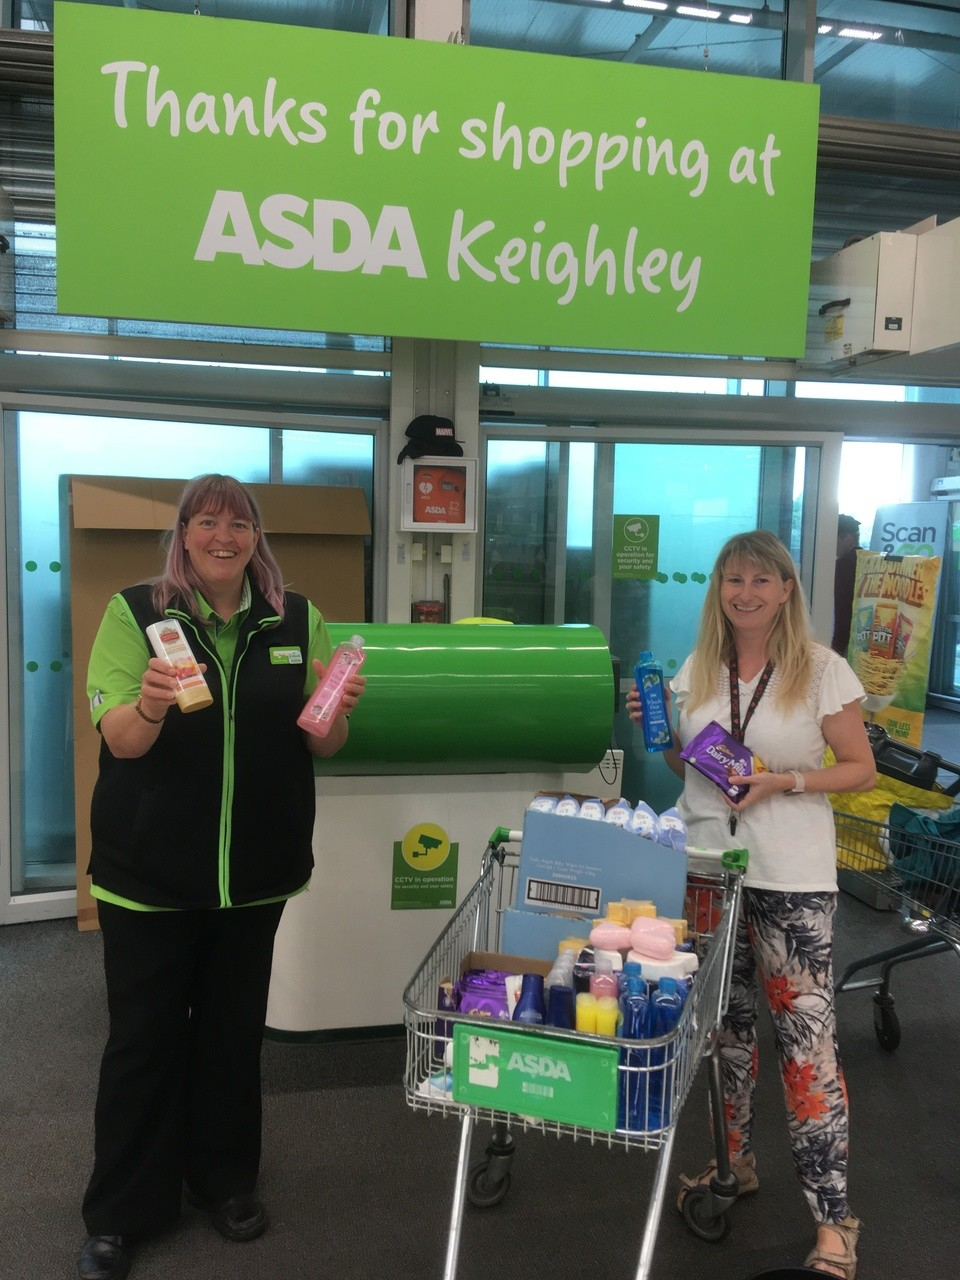 Asda Keighley supporting local families through Pass on Preloved Items | Asda Keighley